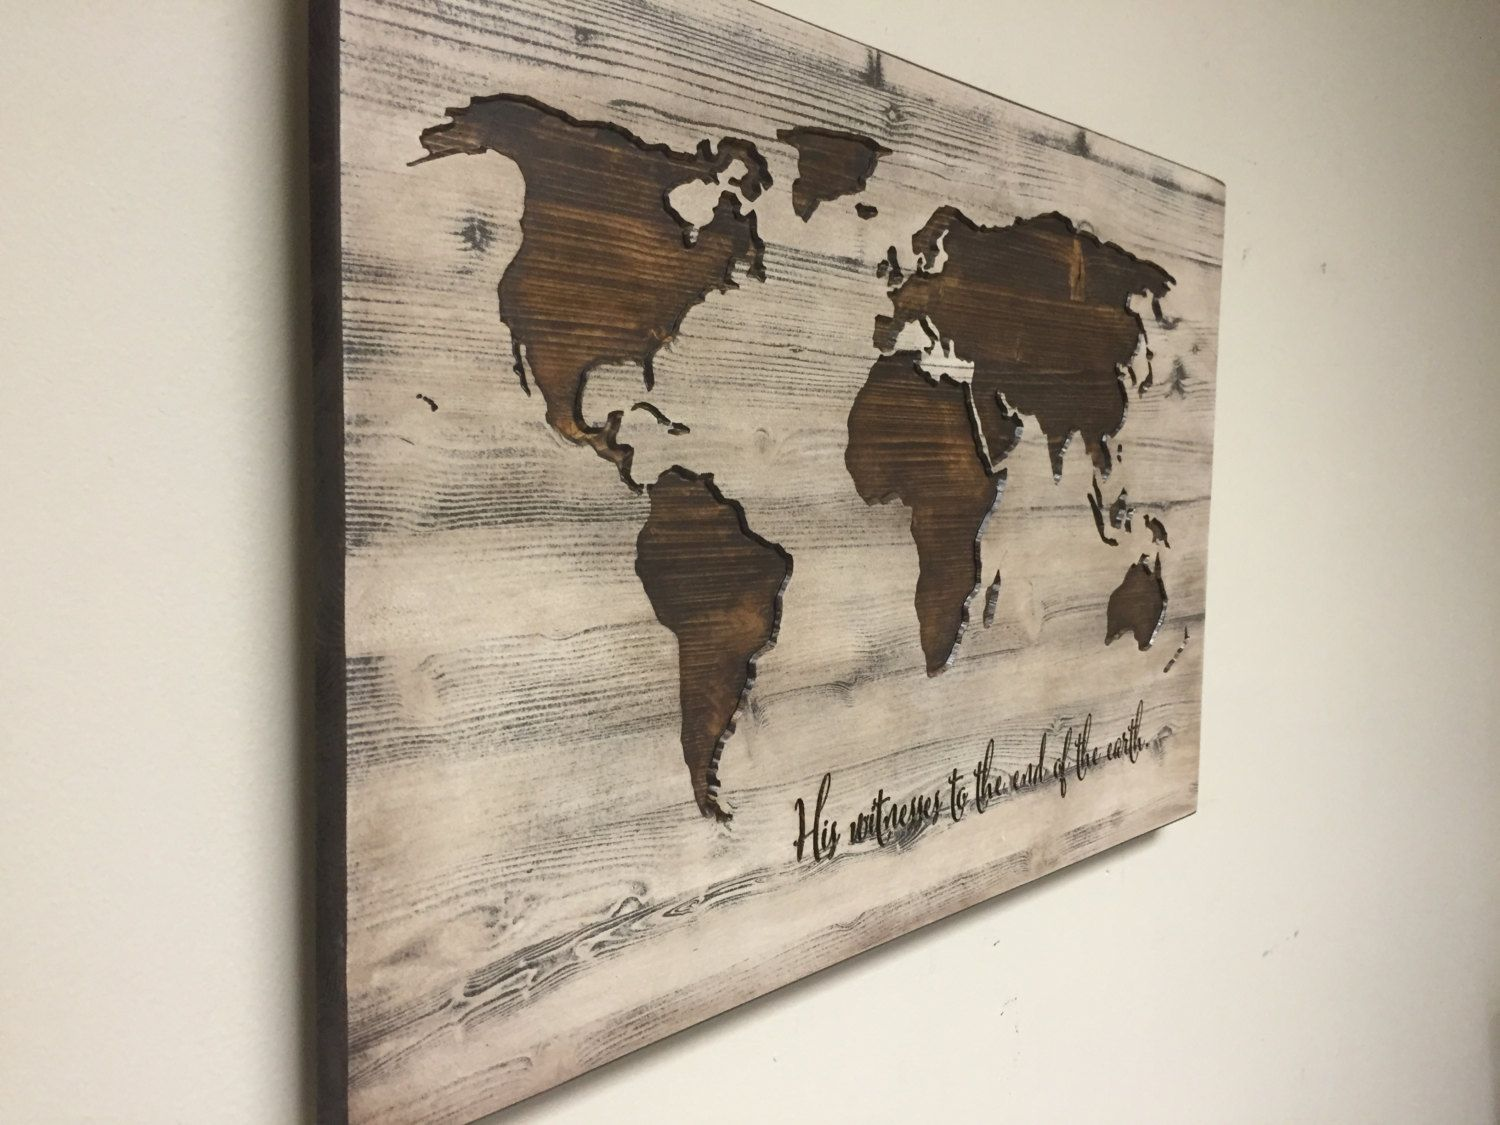 World map wall art spiritual vintage carved wood map his witness world map wall art spiritual vintage carved wood map his witness to the gumiabroncs Image collections